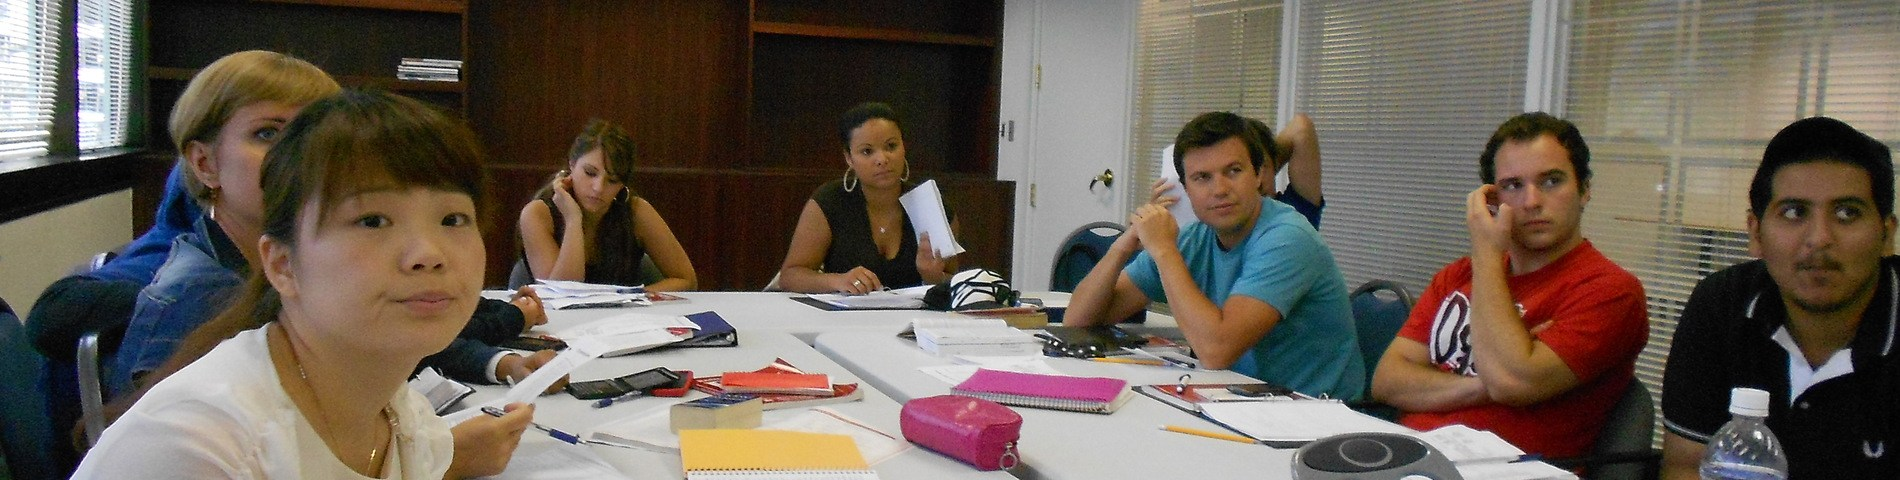 TLA-The Language Academy picture 8